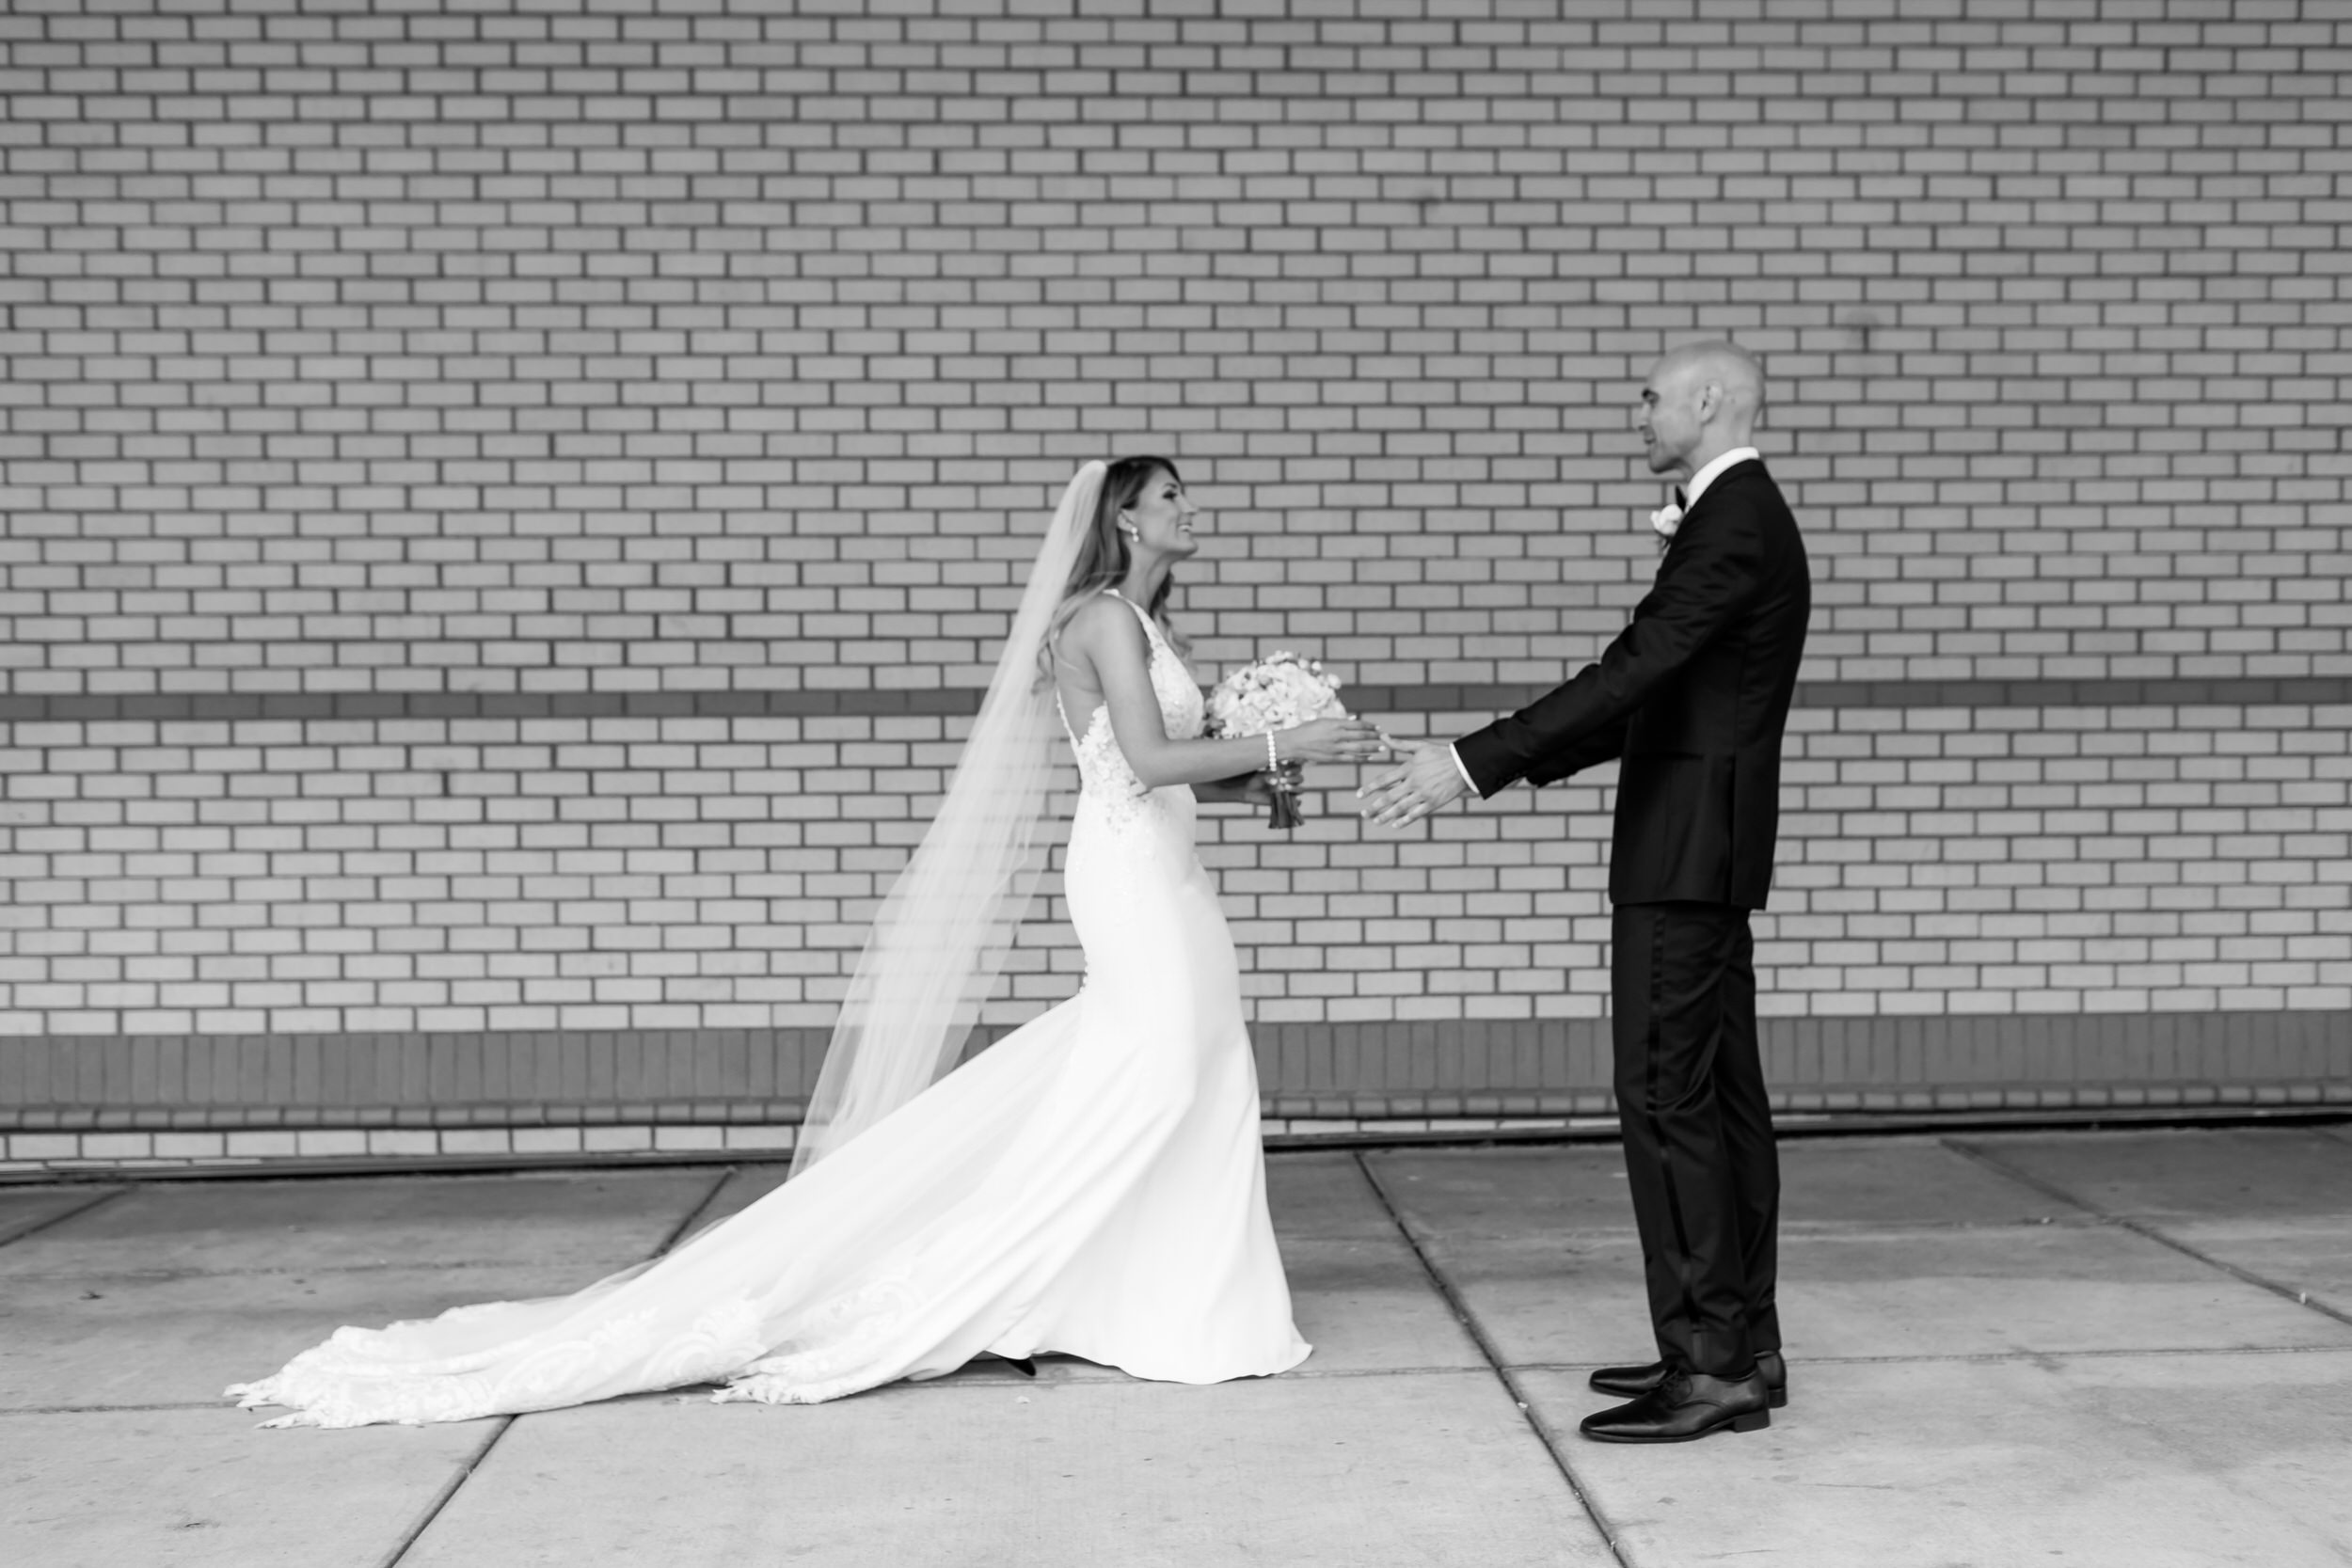 salem_convention_center_wedding_stark_photography_008